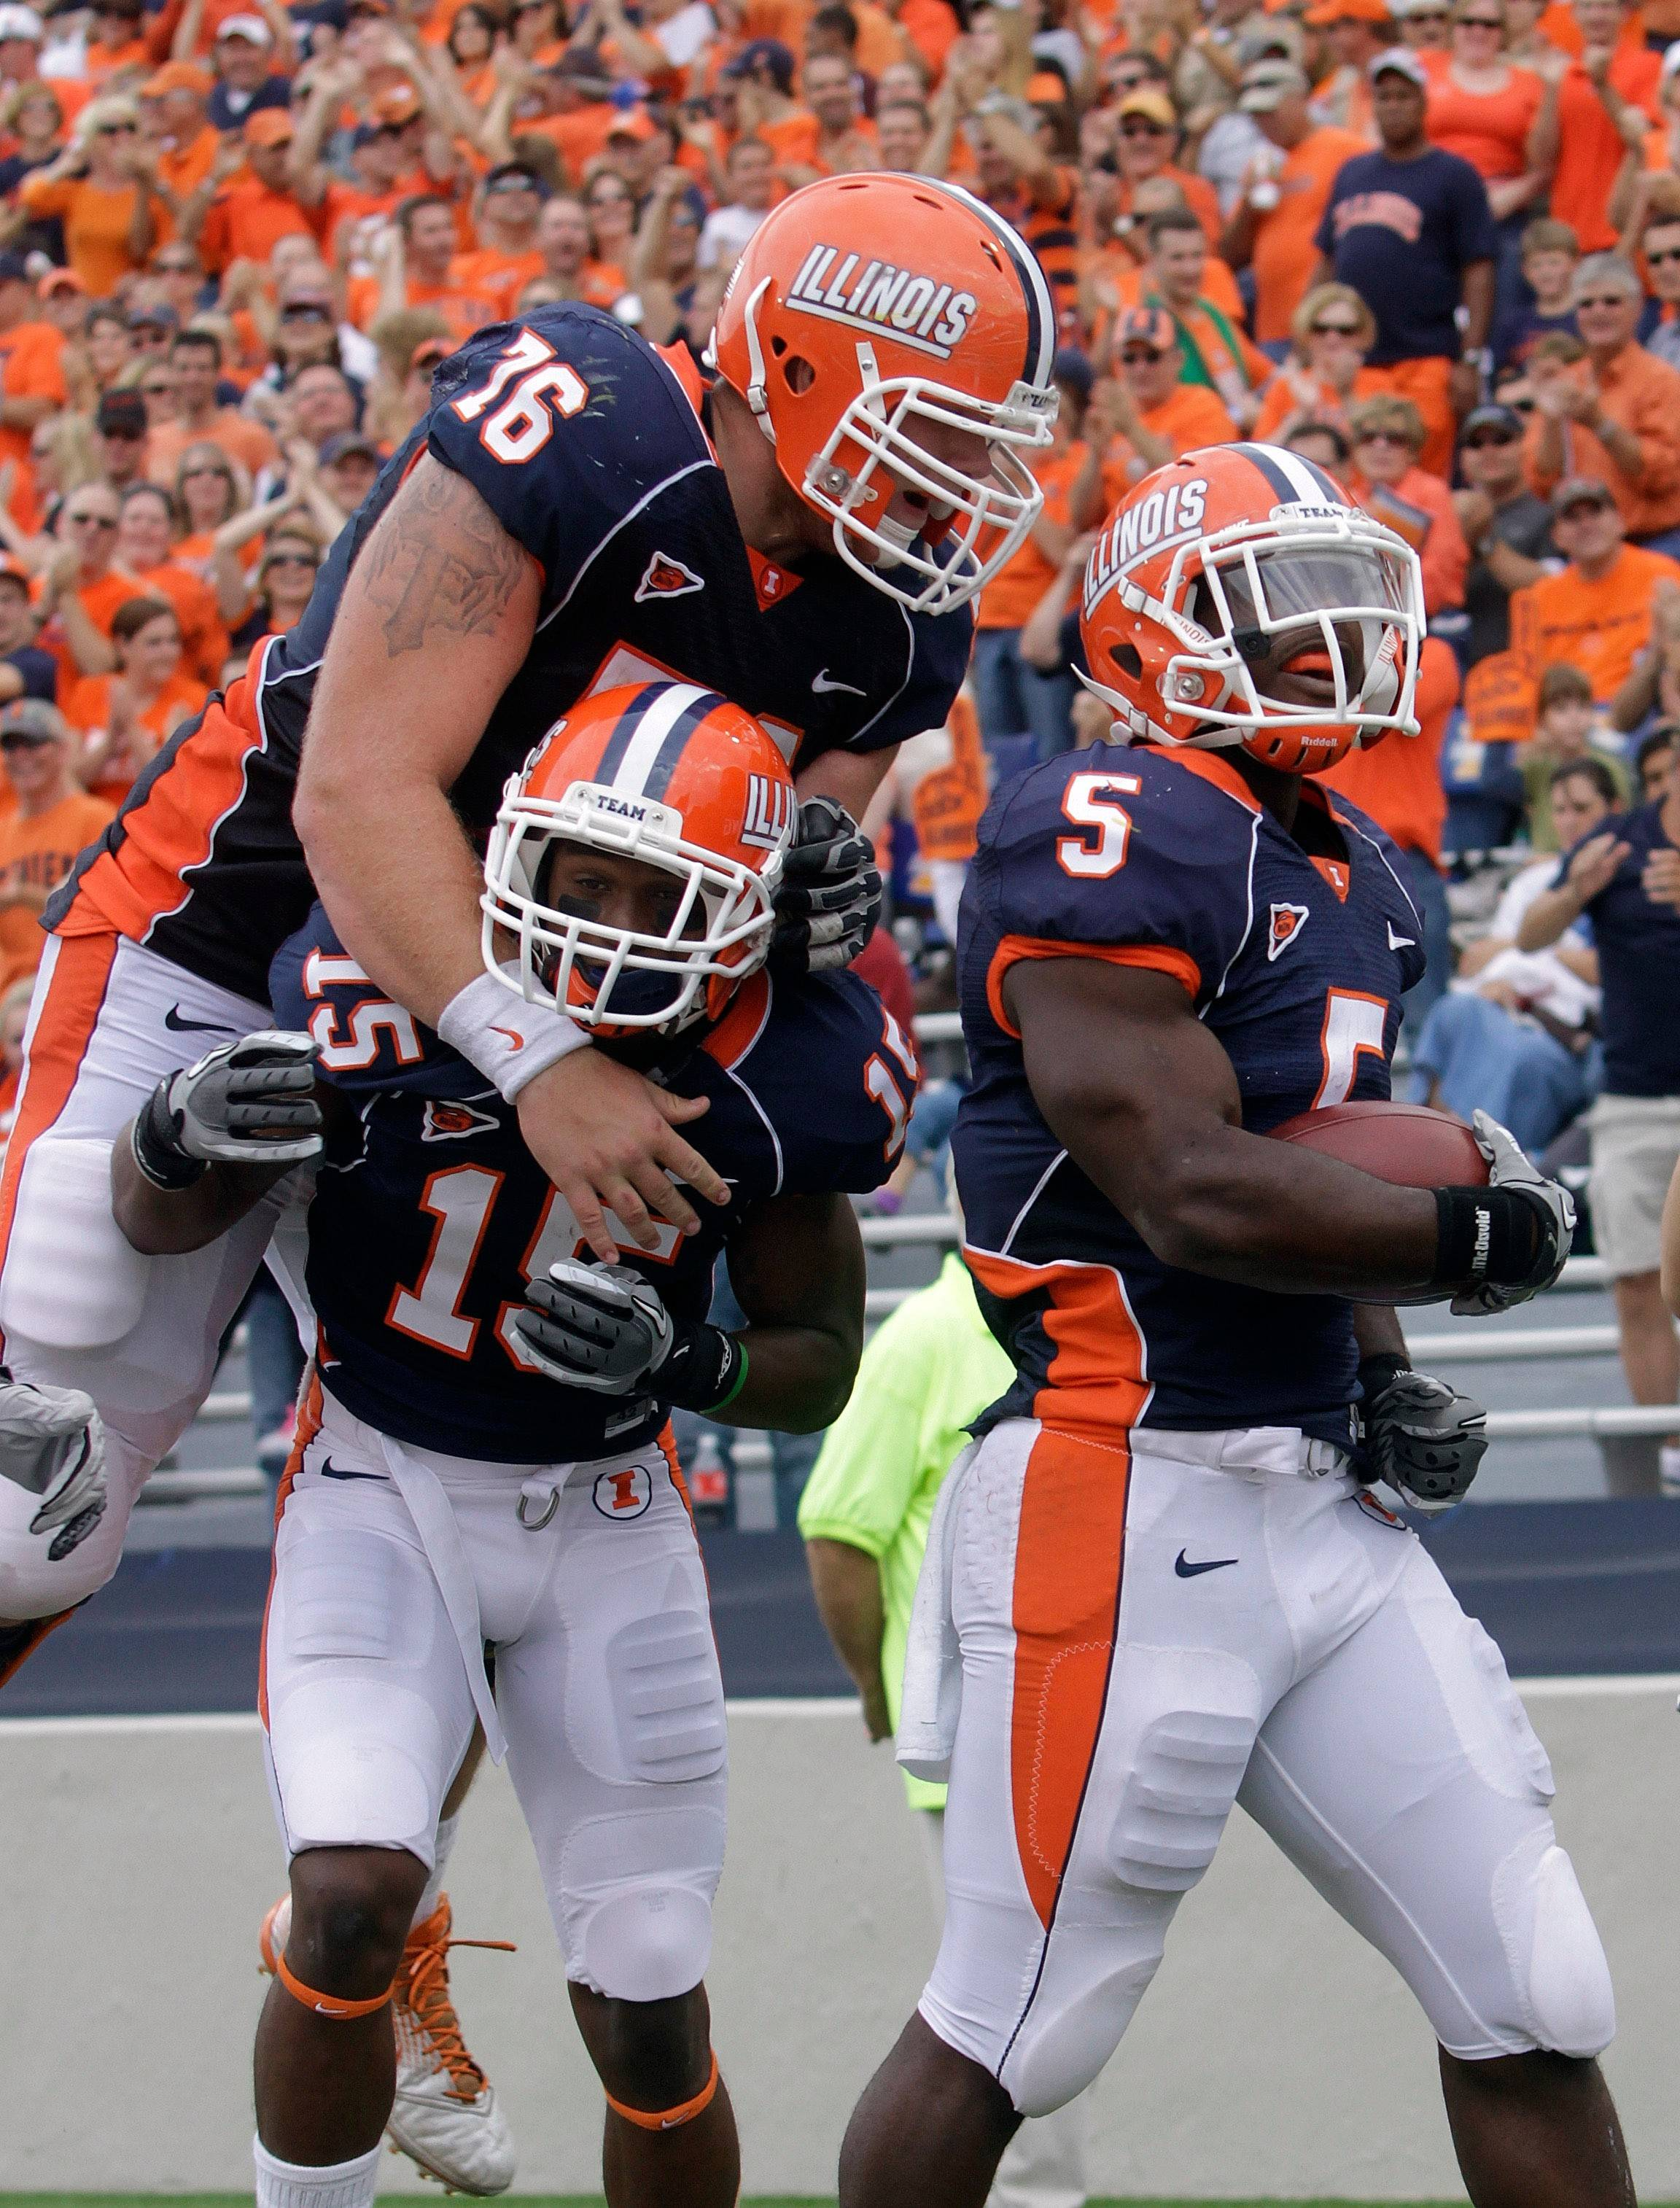 Playing for Illinois, offensive lineman Graham Pocic (76) and Darius Millines (15) celebrate with Donovonn Young, who rushed for a touchdown against South Dakota State in Champaign.